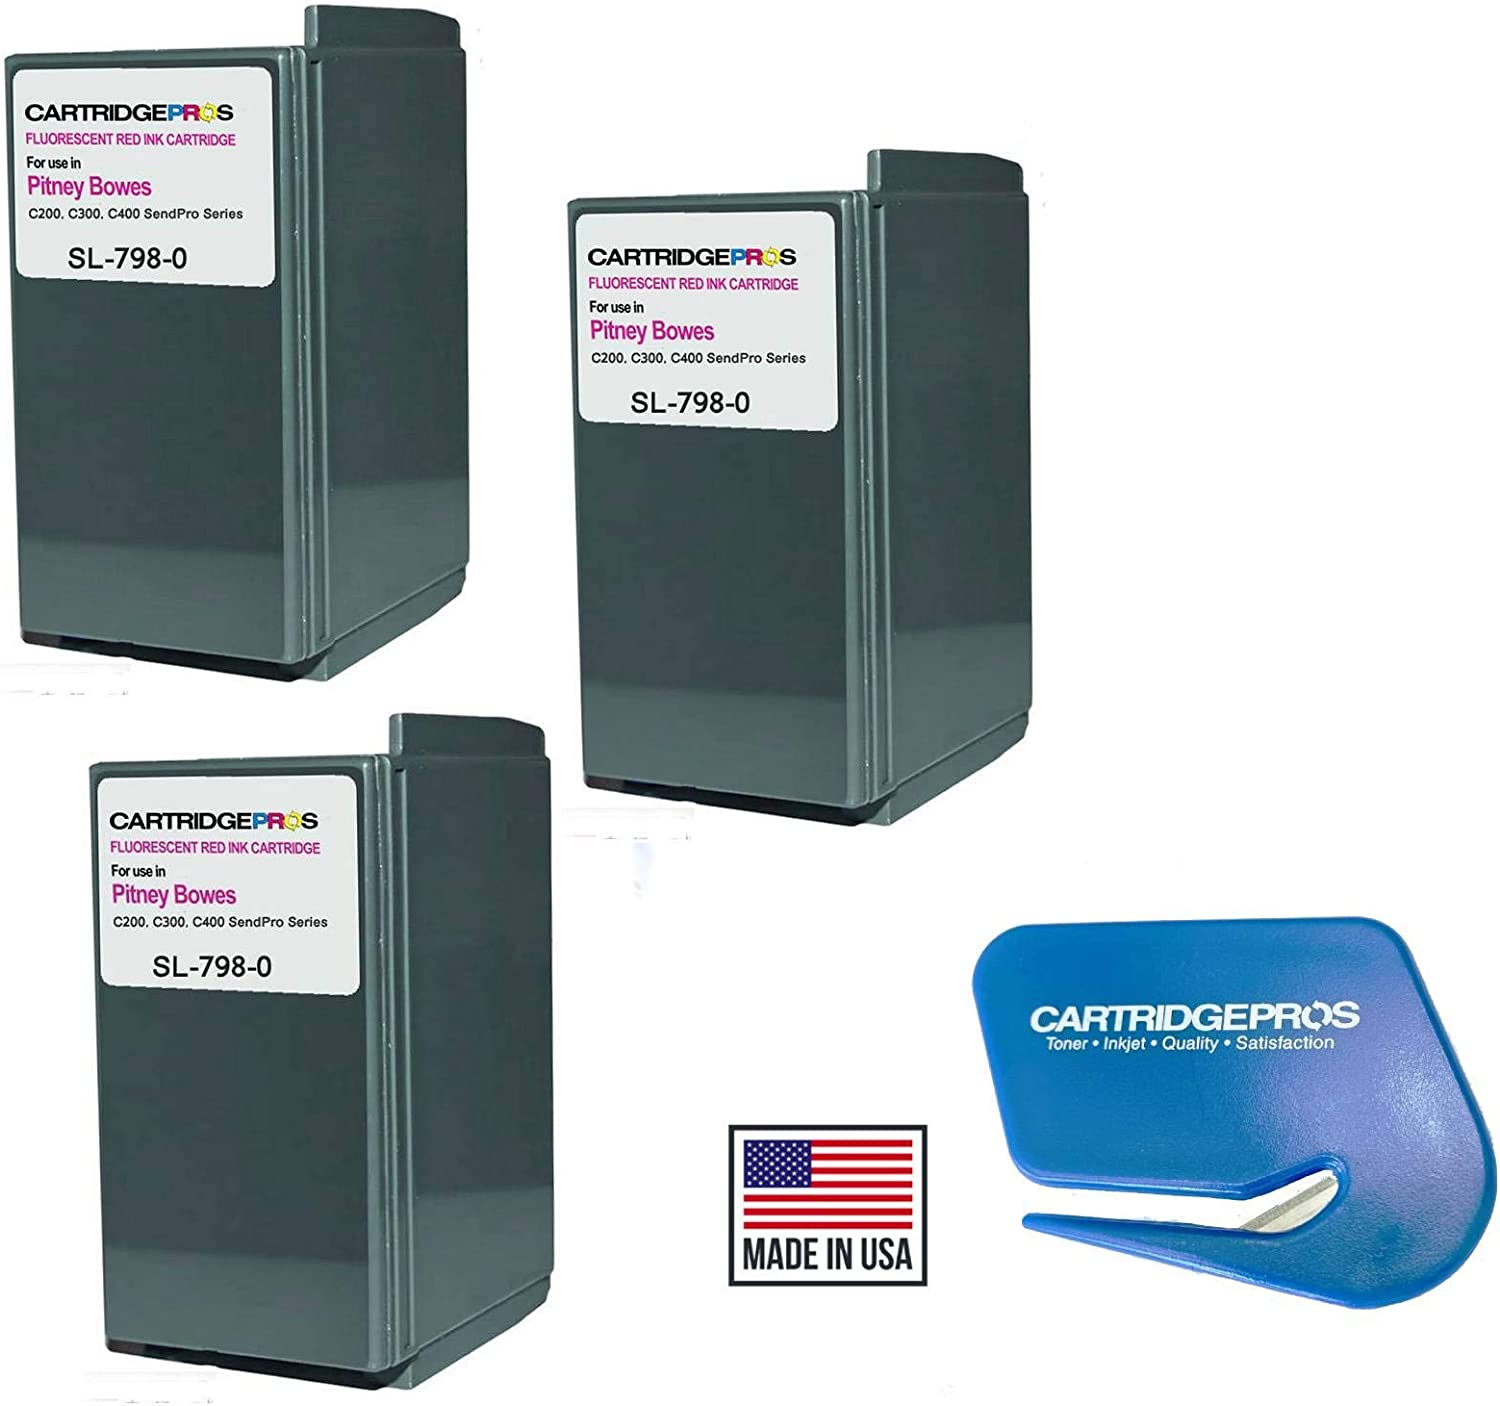 Made in USA Cartridge Pros Brand SL‑798‑0 Ink Cartridge 3-PACK for Pitney Bowes SendPro C200, C300 and C400 Postage Machines. Including a Cartridge Pros Brand Letter Opener for The Office